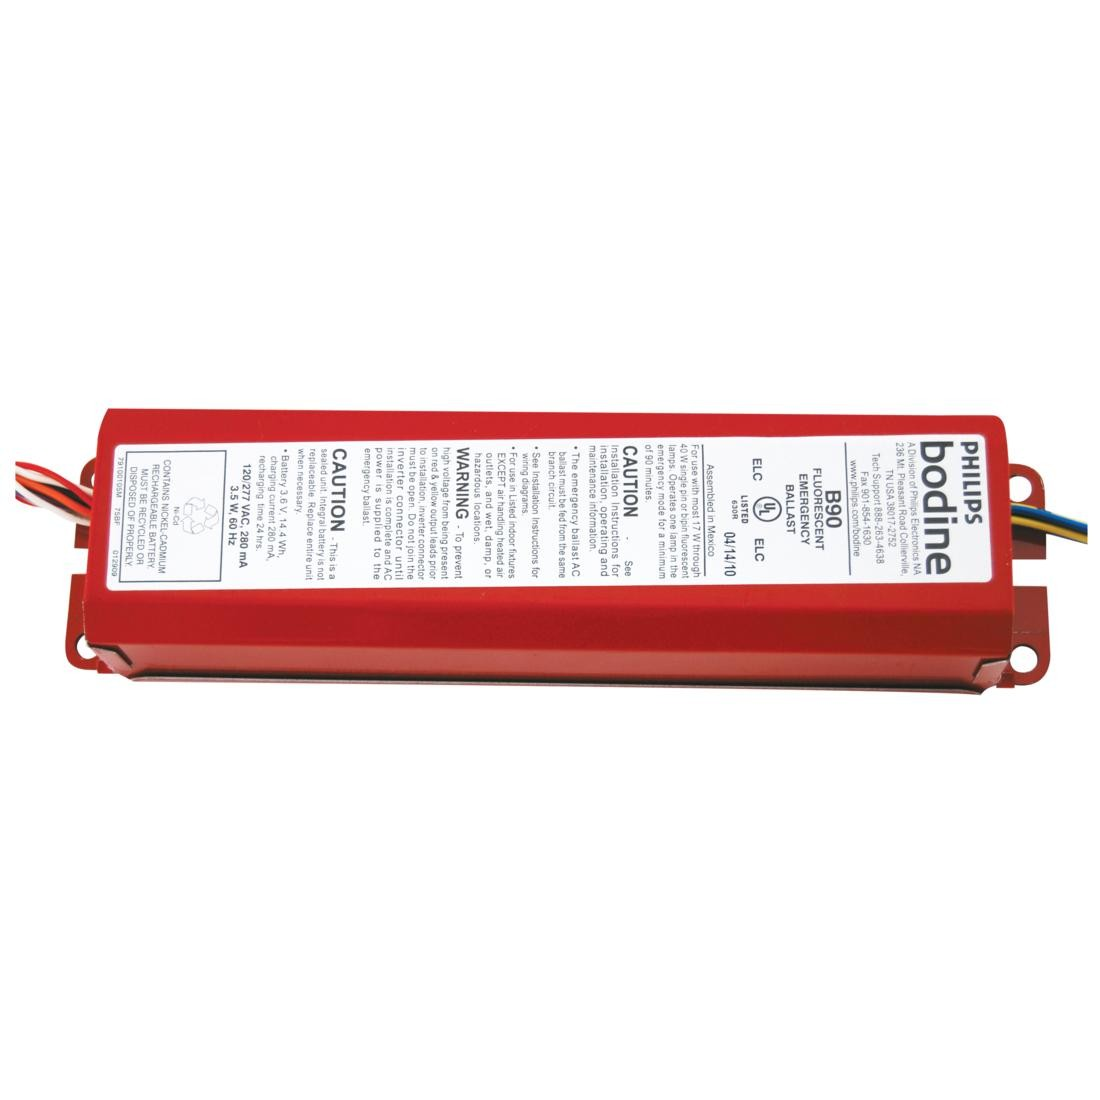 WPCFL_BAL_EMERG_B90_BODINE fluorescent emergency back up batteries ballasts bodine b90 emergency ballast wiring diagram at gsmx.co